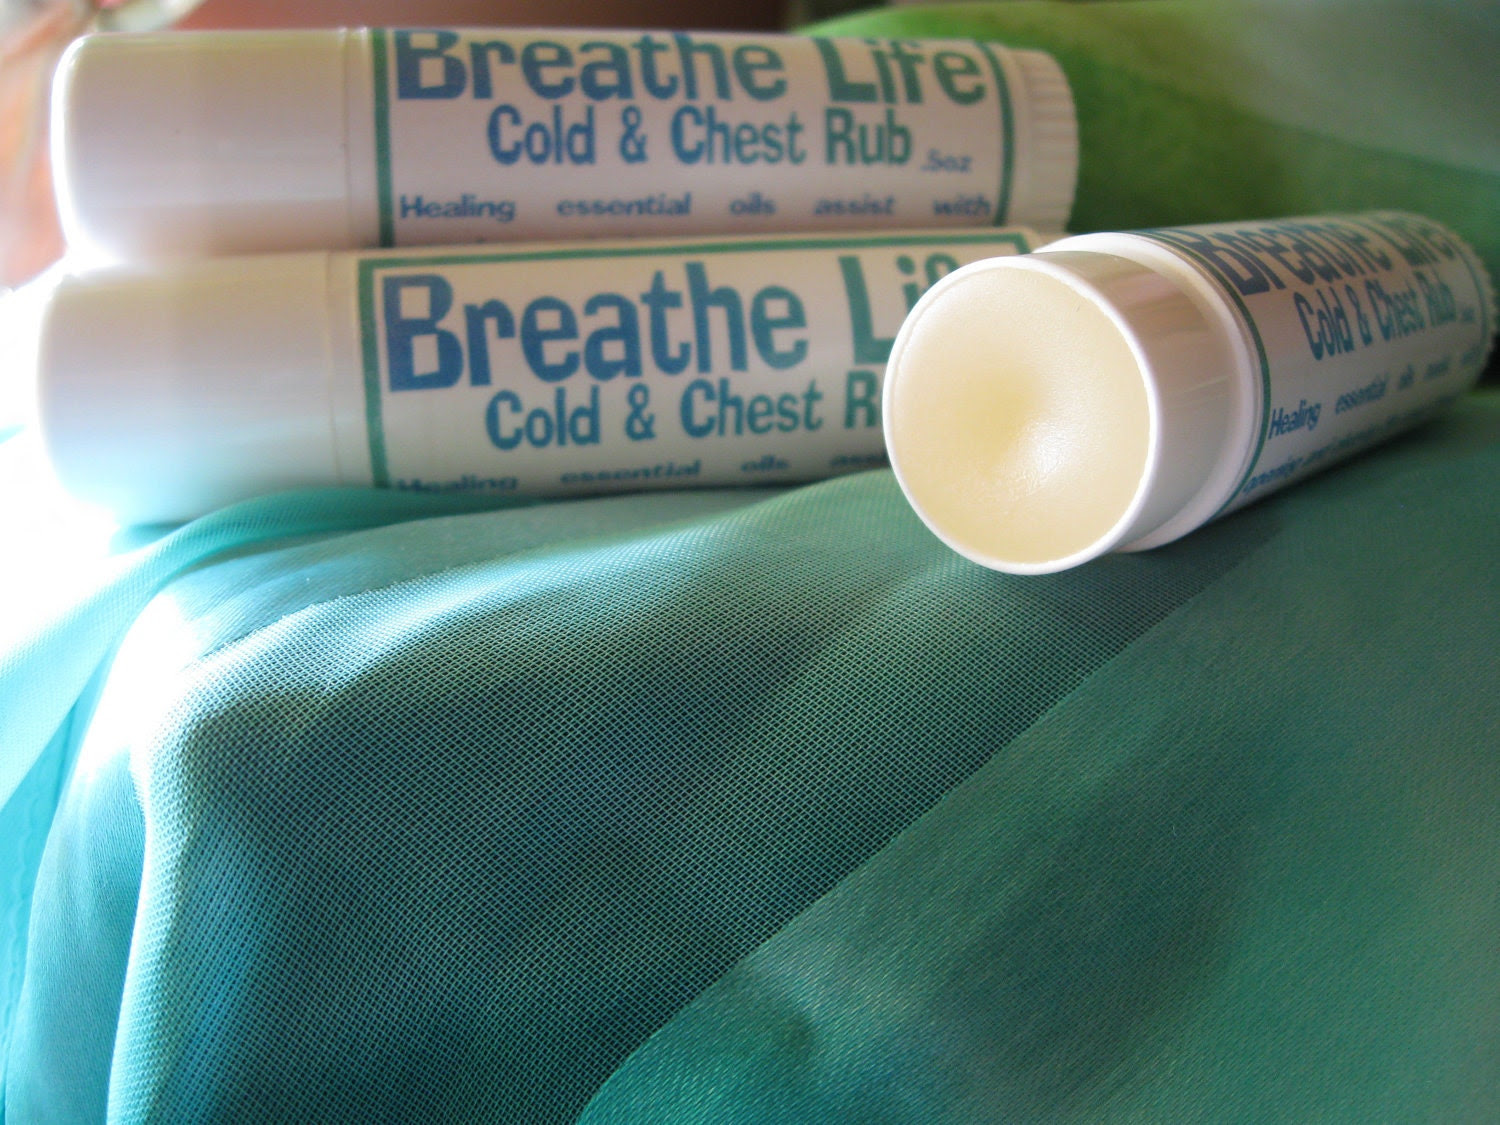 CHEST Rub and SINUS Relief... Breathe LIFE...Aromatic Vapors to open Breathing Passages